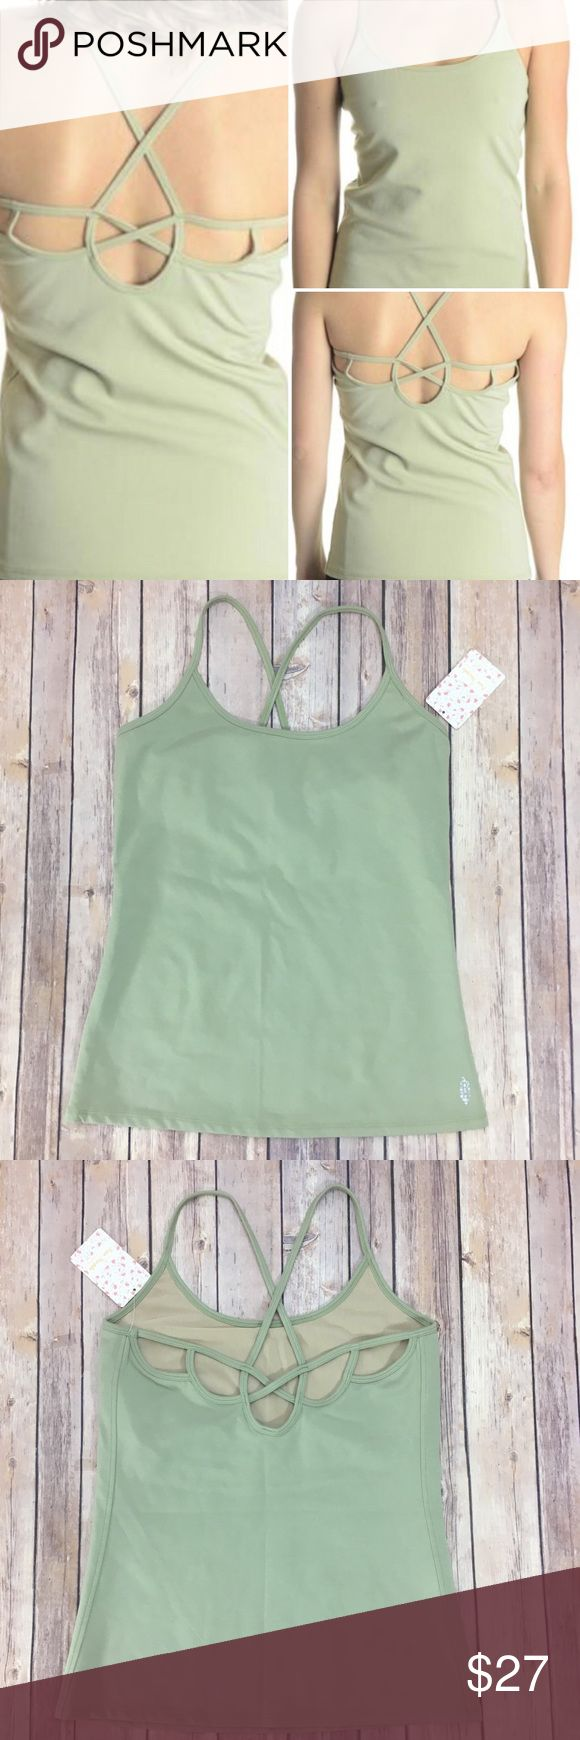 Free People Moonshadow Shelf Bra Camisole NWT Sz L Free People Moonshadow Shelf Bra Camisole NWT Sz L is a beautiful high performance tank top with a strapping back and built-in shelf bra.  From the Free People Activewear this gorgeous sage green cami is soft, stretchy and comfortable. Free People Tops